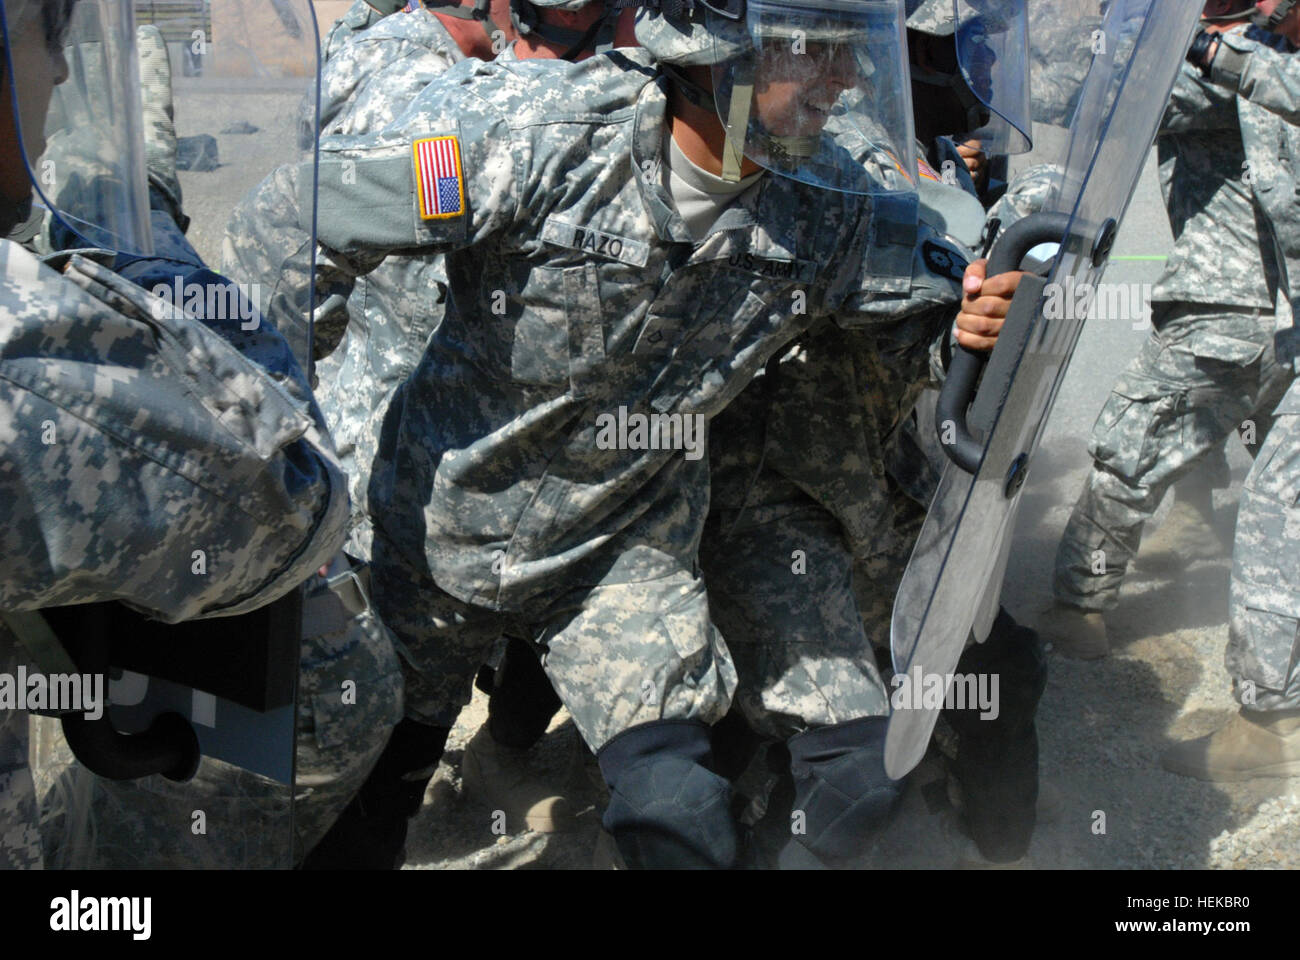 A member of the 40th Military Police Company, 185th Military Police Battalion, 49th  Military Police Brigade, scrums - Stock Image